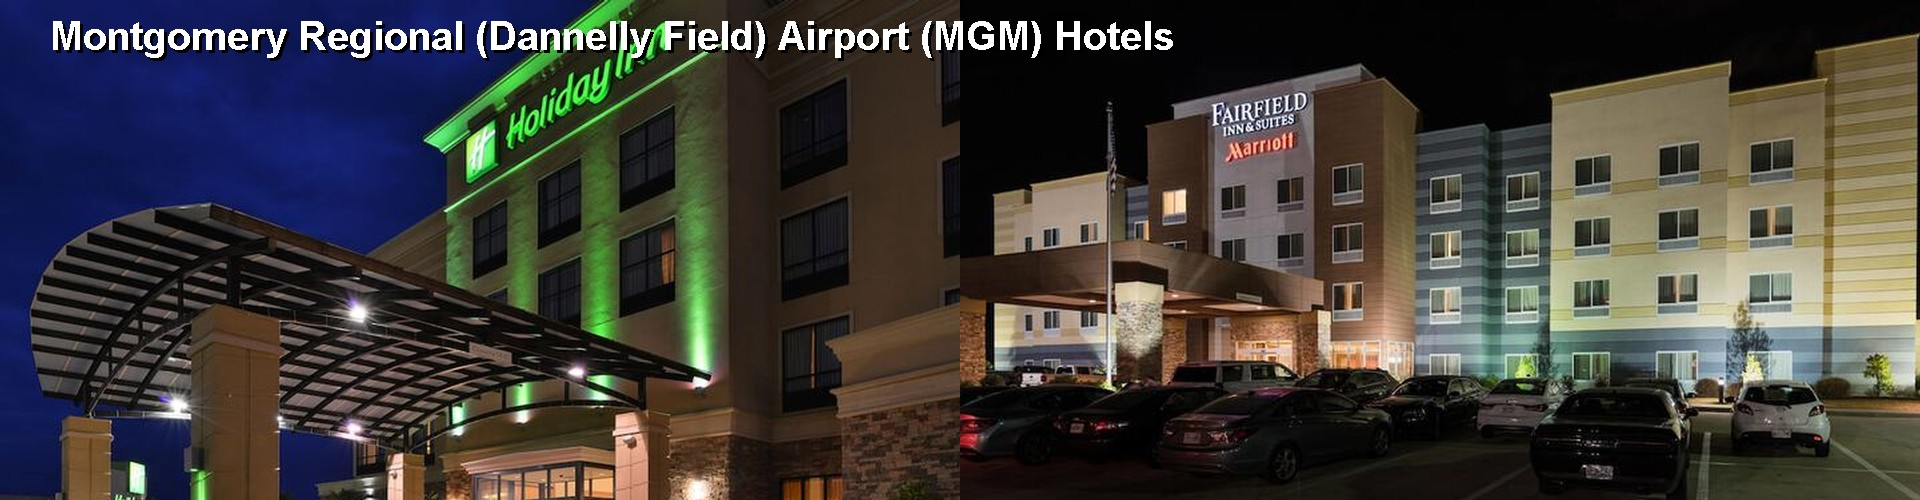 5 Best Hotels Near Montgomery Regional Dannelly Field Airport Mgm